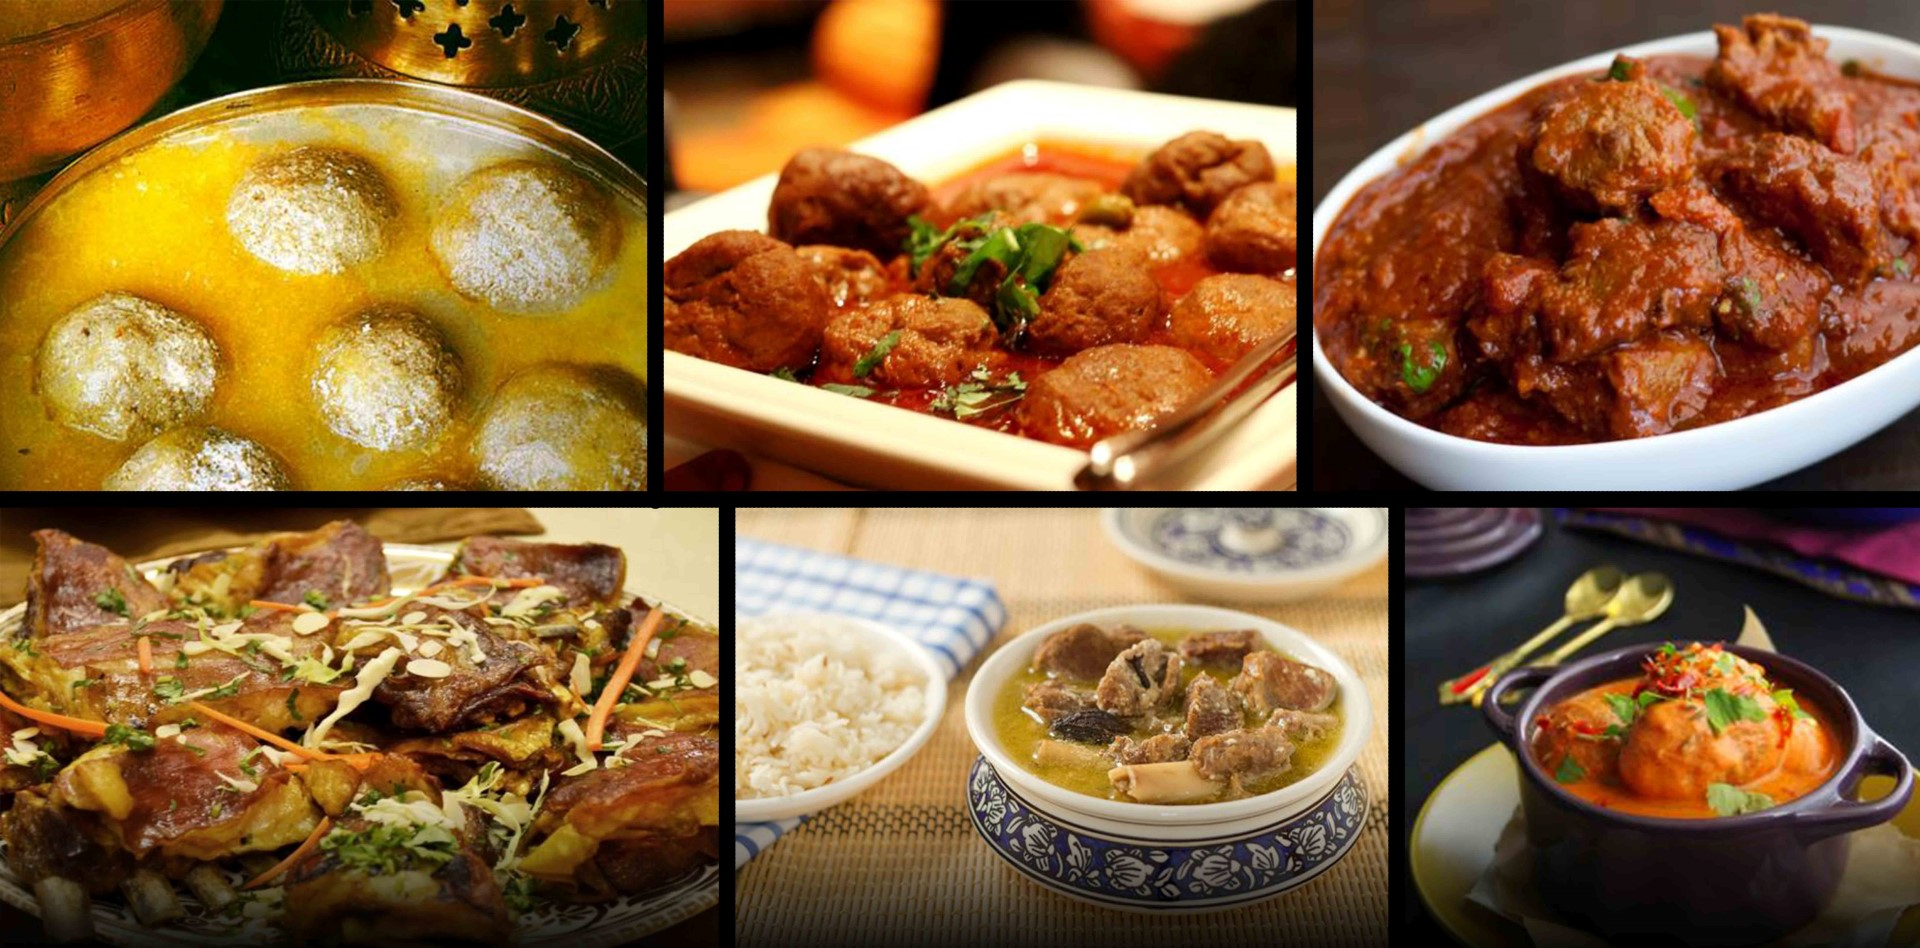 Top 20 kashmiri foods you have to try crazy masala food - Kashmir indian cuisine ...